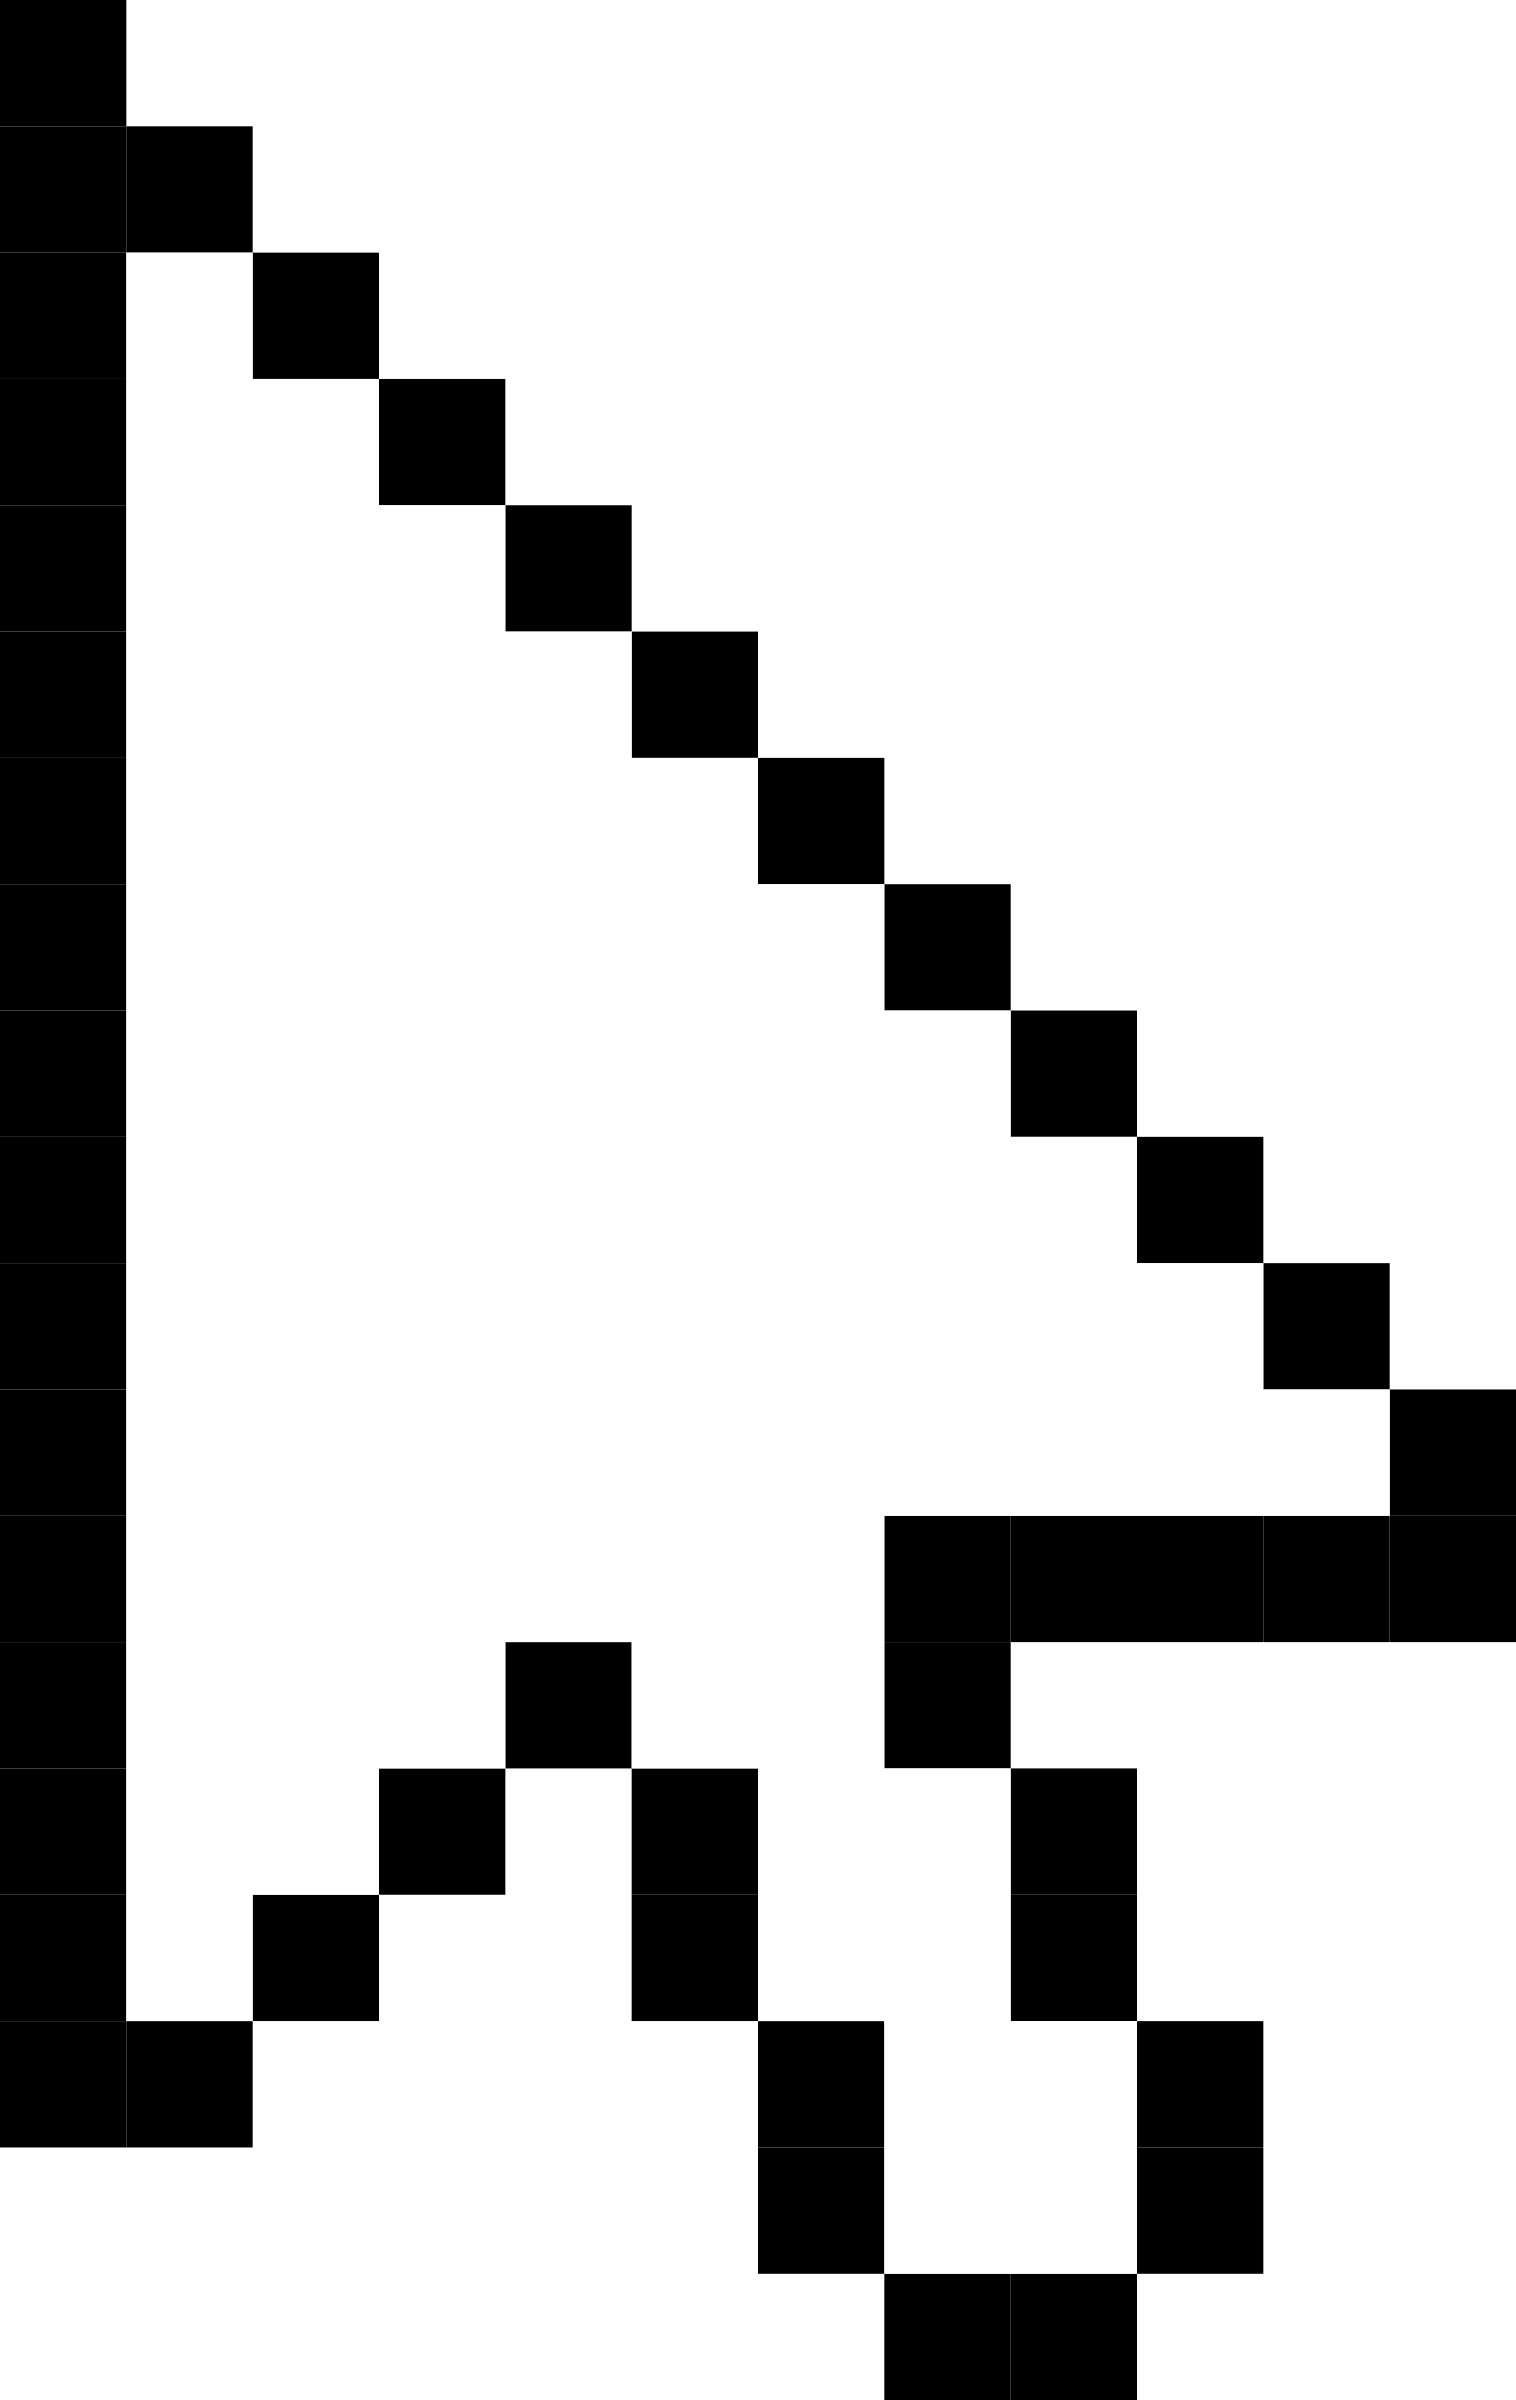 Windows cursor png. Computer mouse pointer pixel